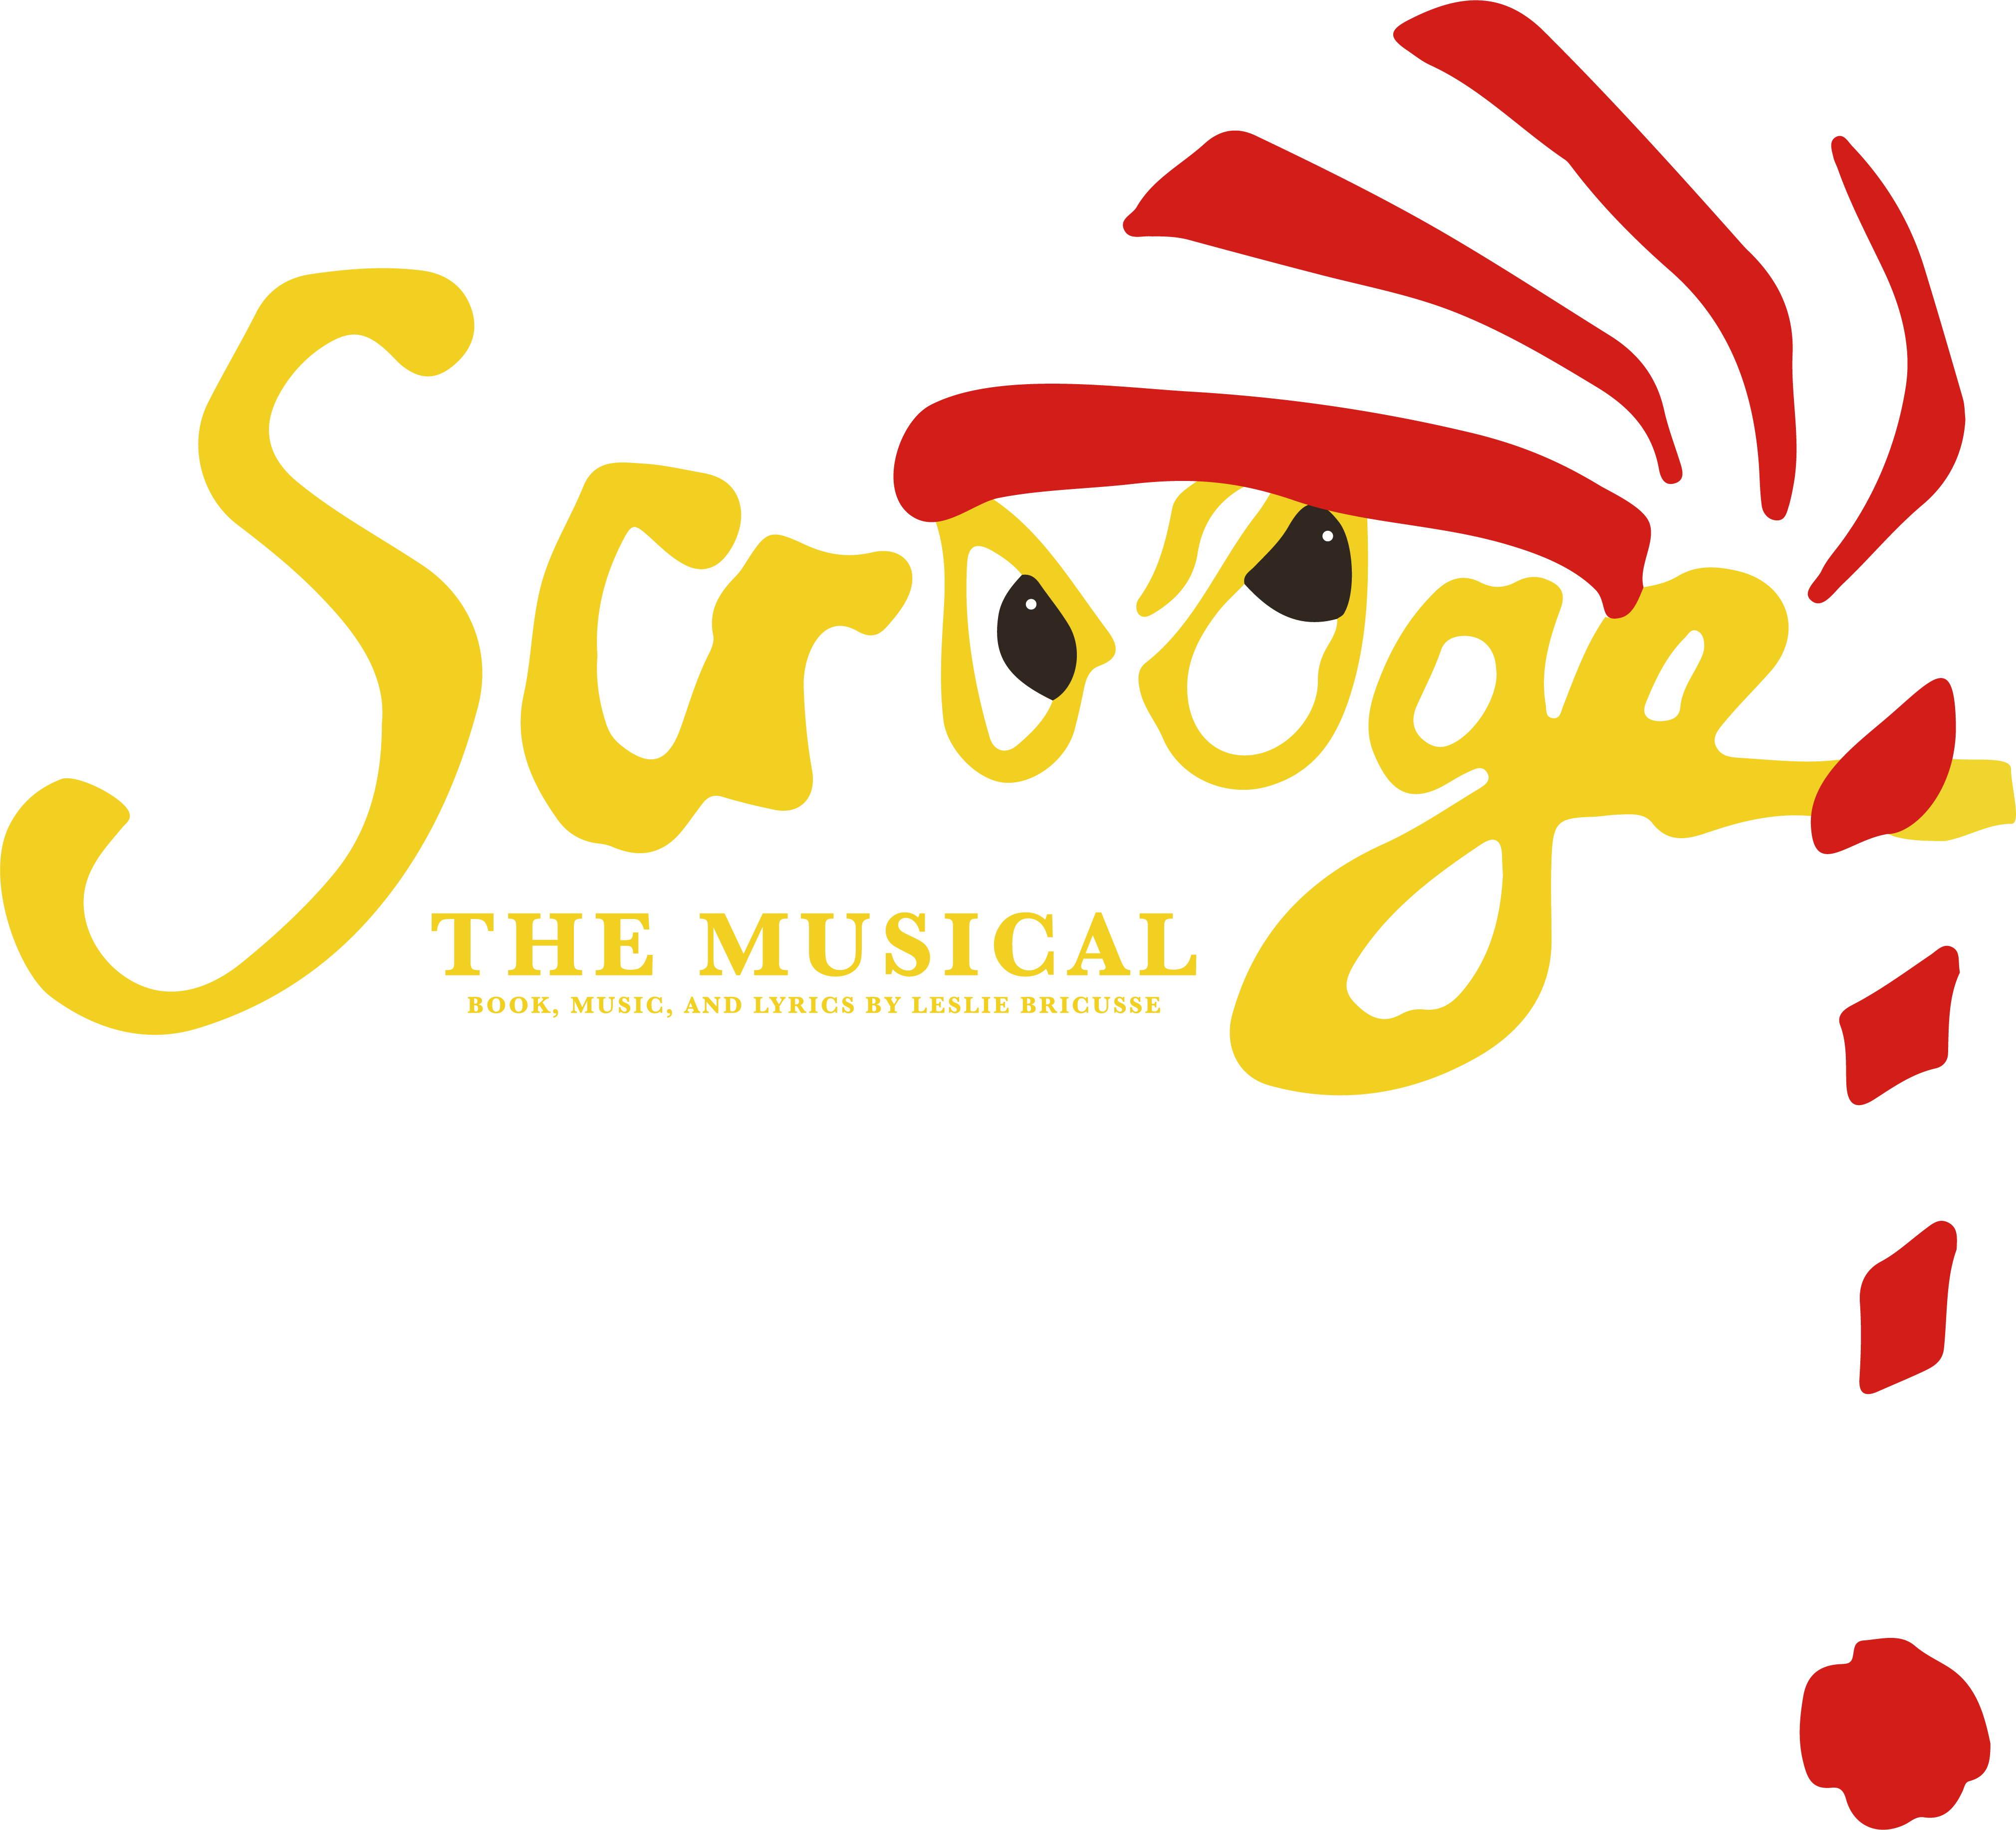 Get your tickets to SCROOGE, THE MUSICAL!